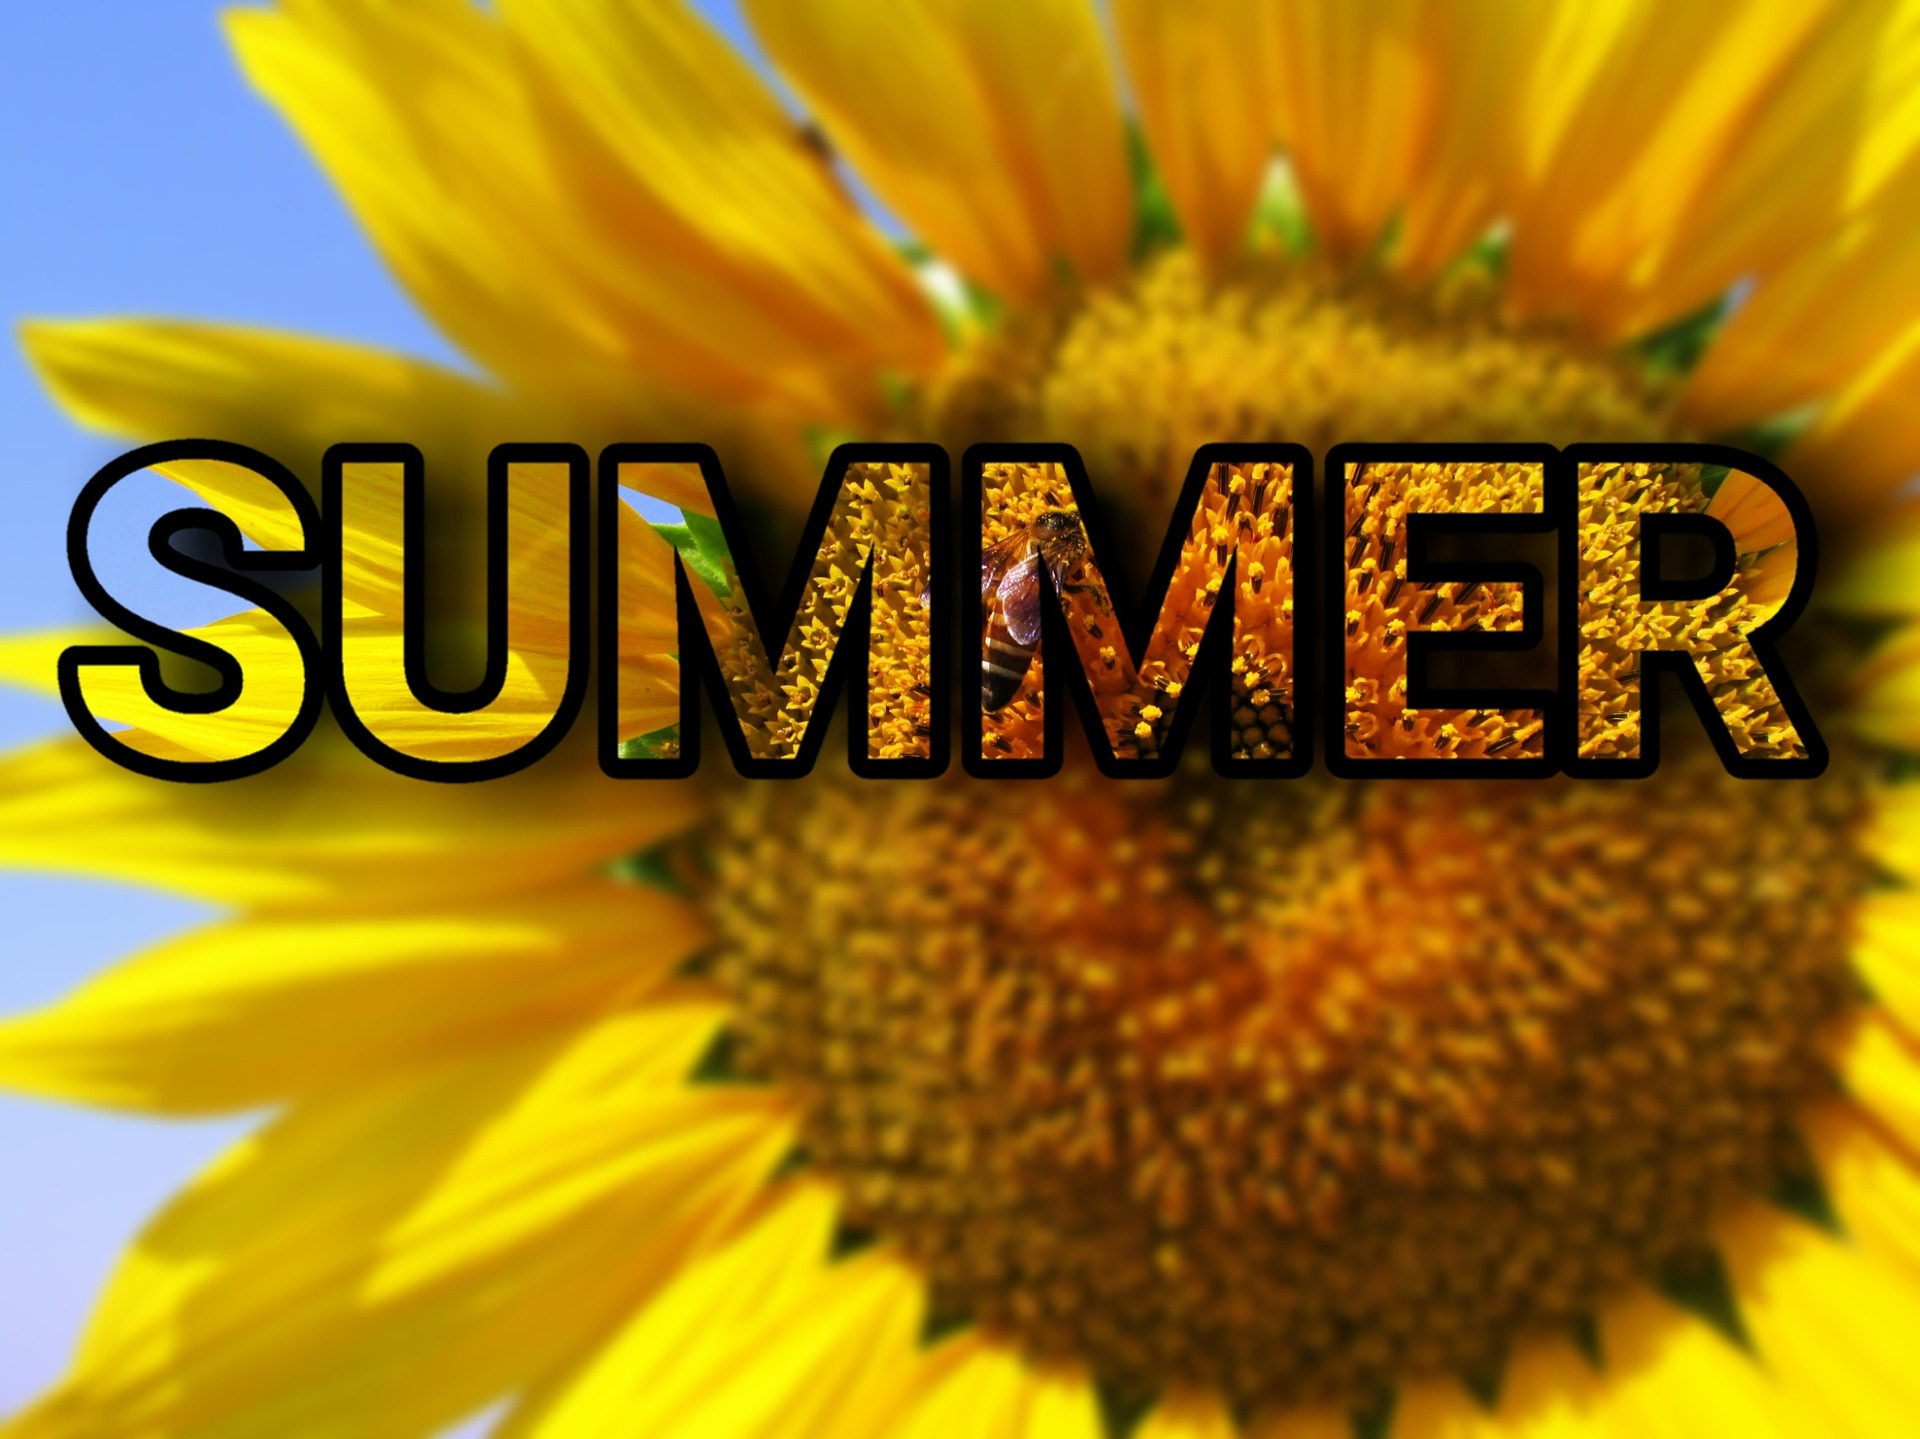 7 Happy First Day Of Summer Images To Post On June 21